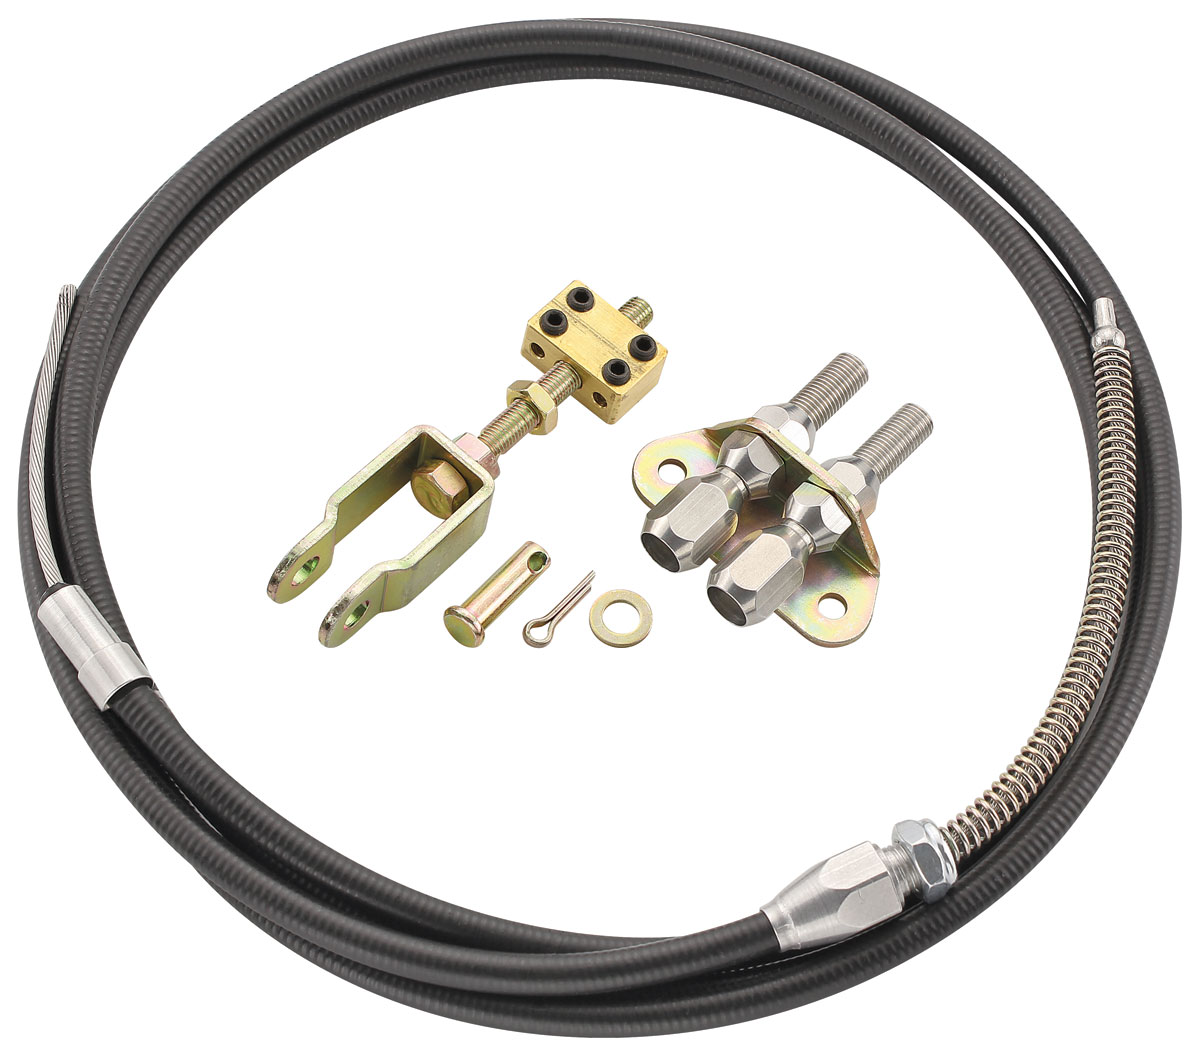 Photo of Brake Cable Kit, Parking